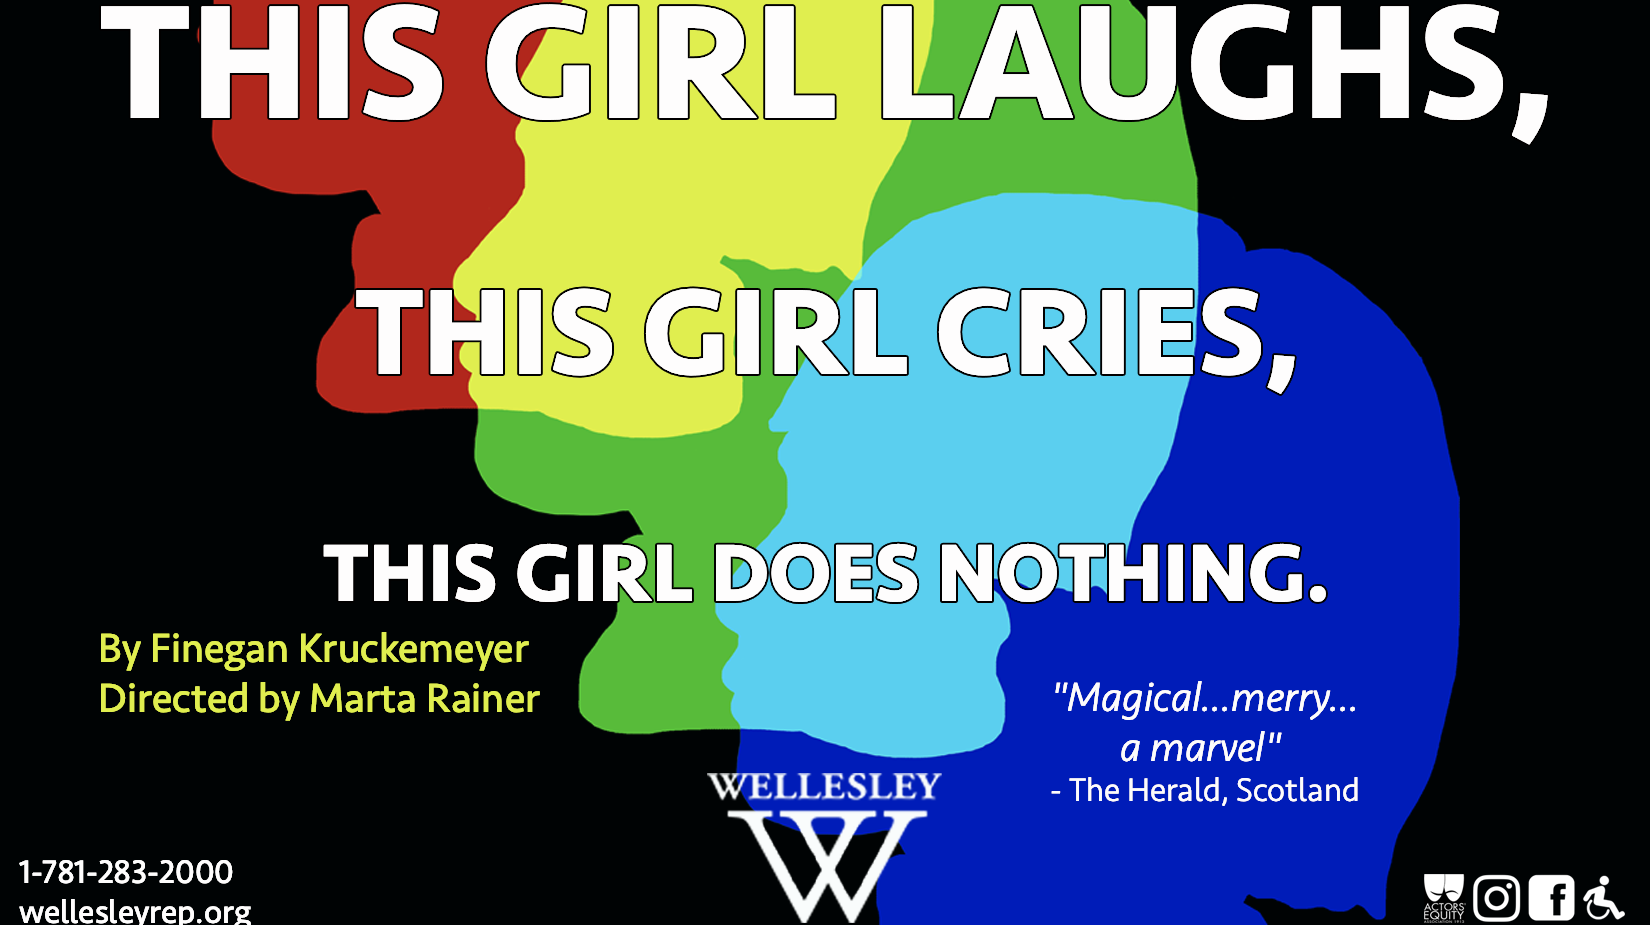 This Girl Laughs, This Girl Cries, This Girl Does Nothing